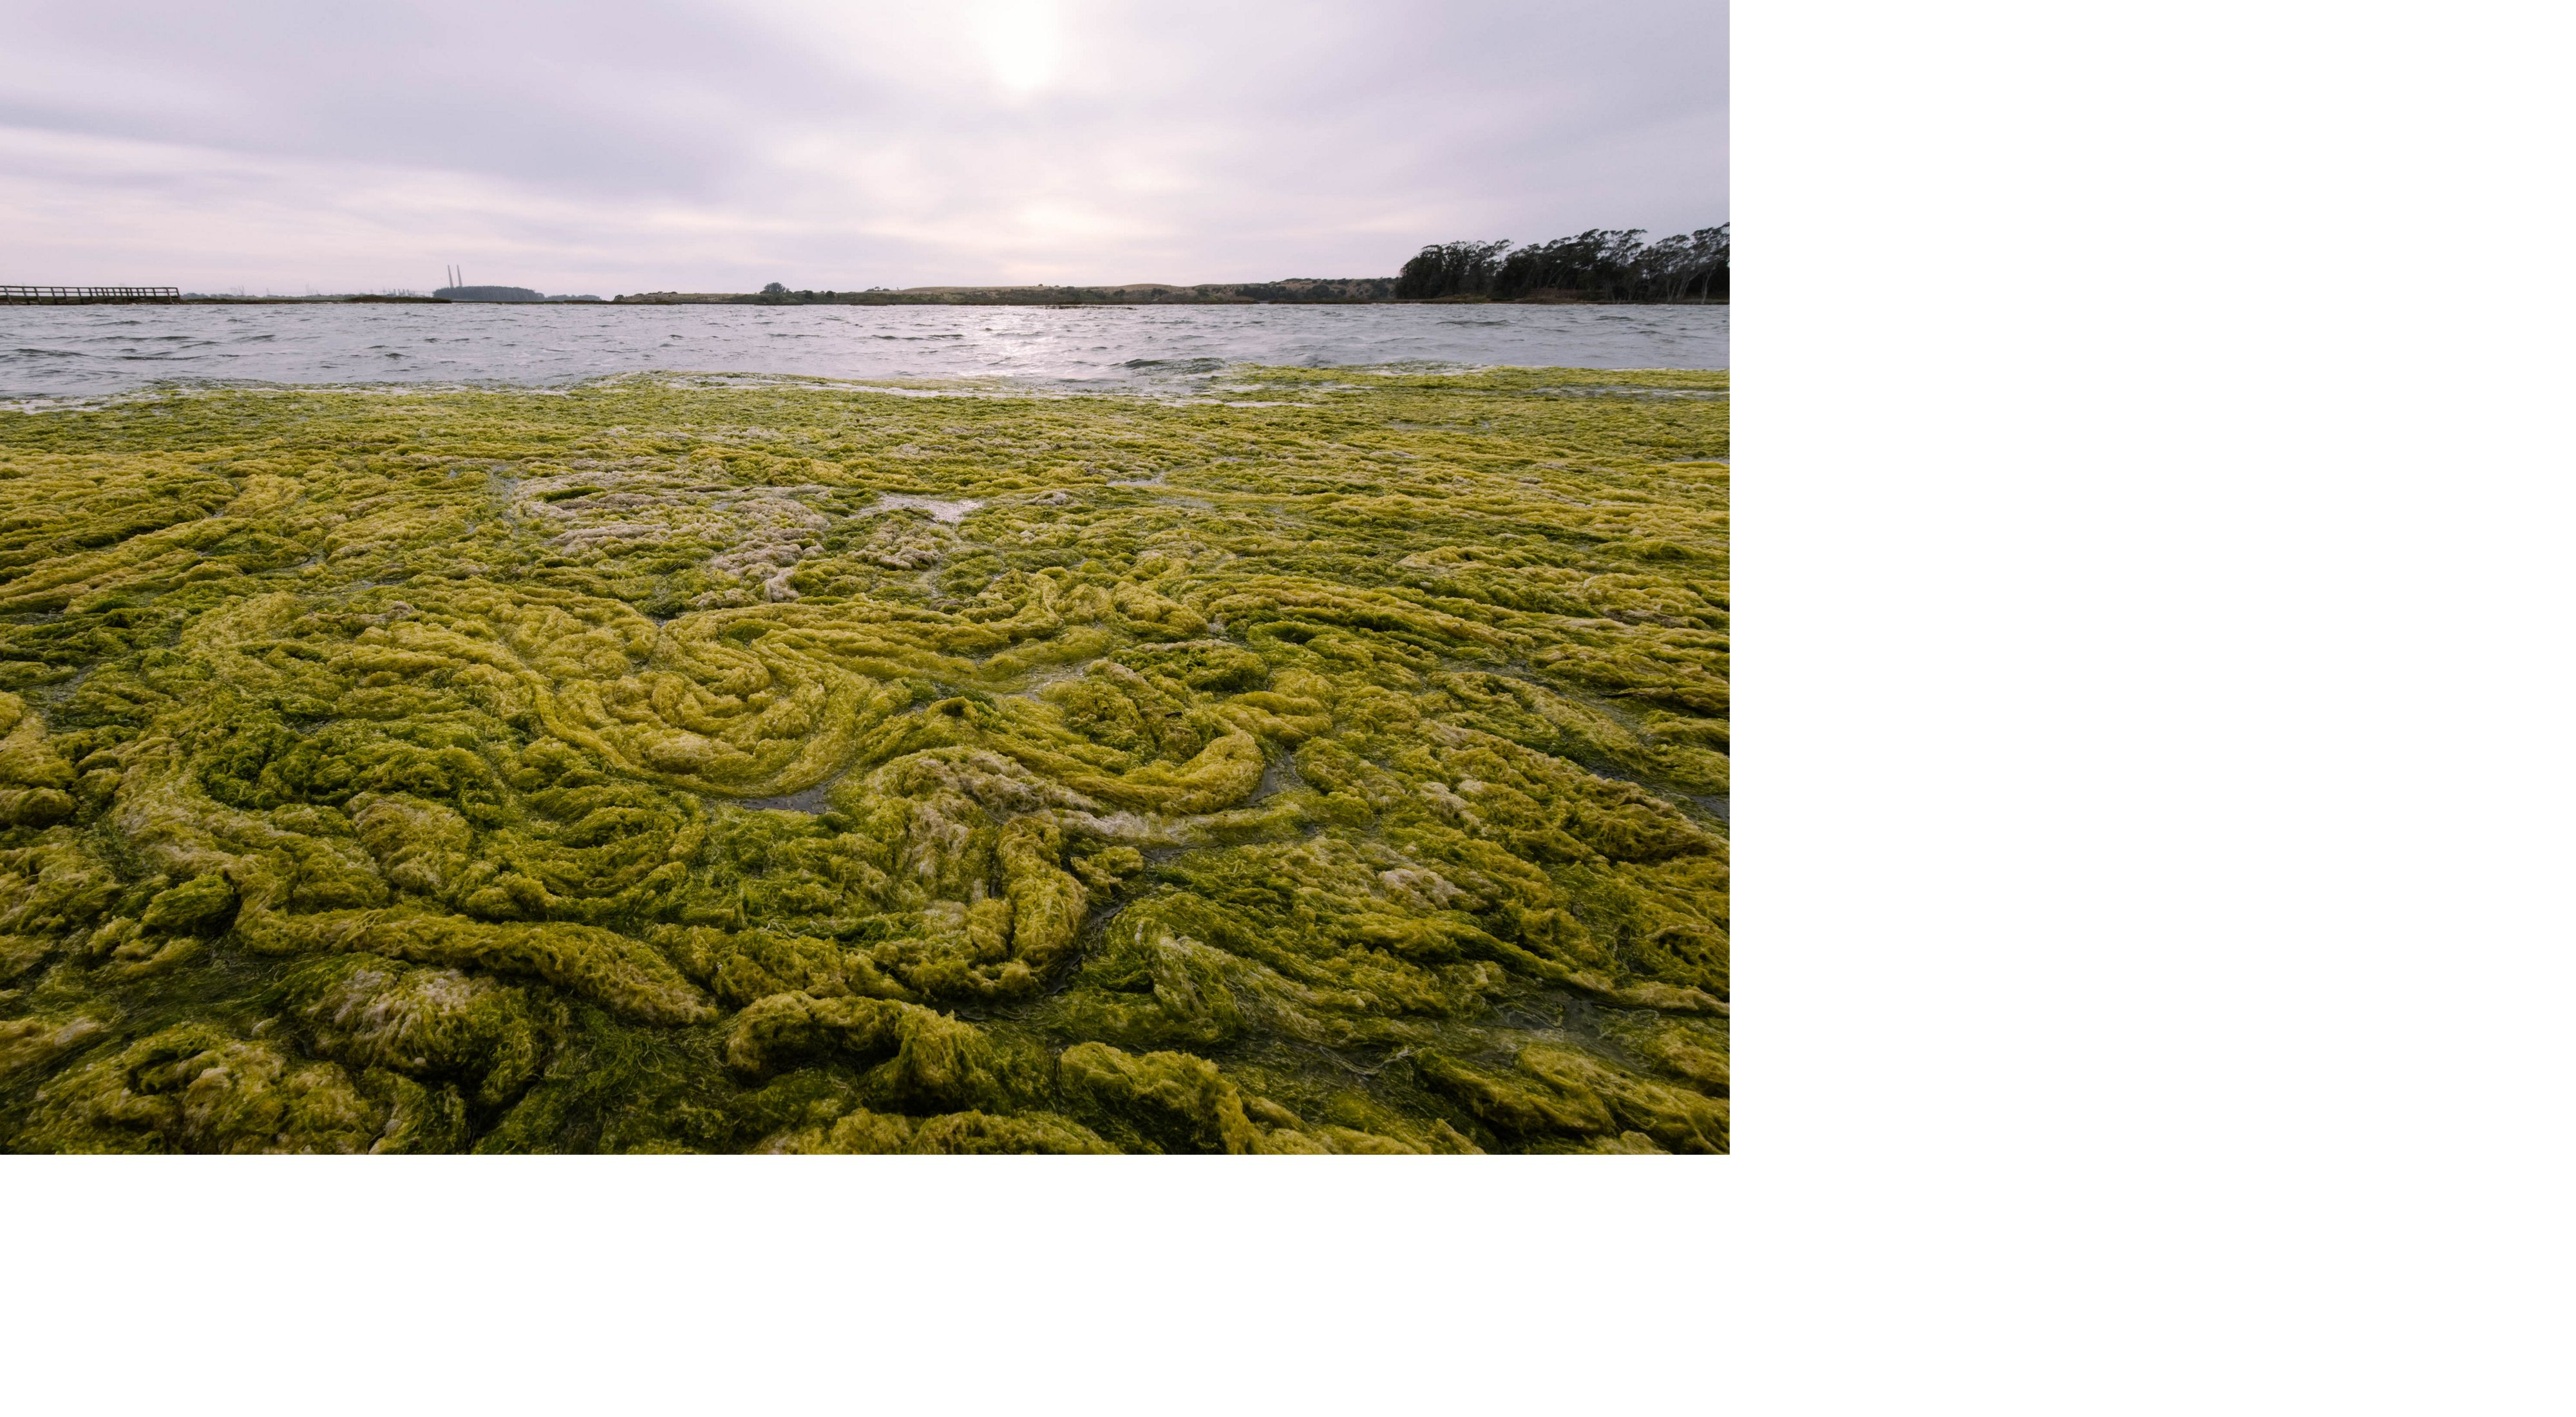 Large blooms of algae in the water